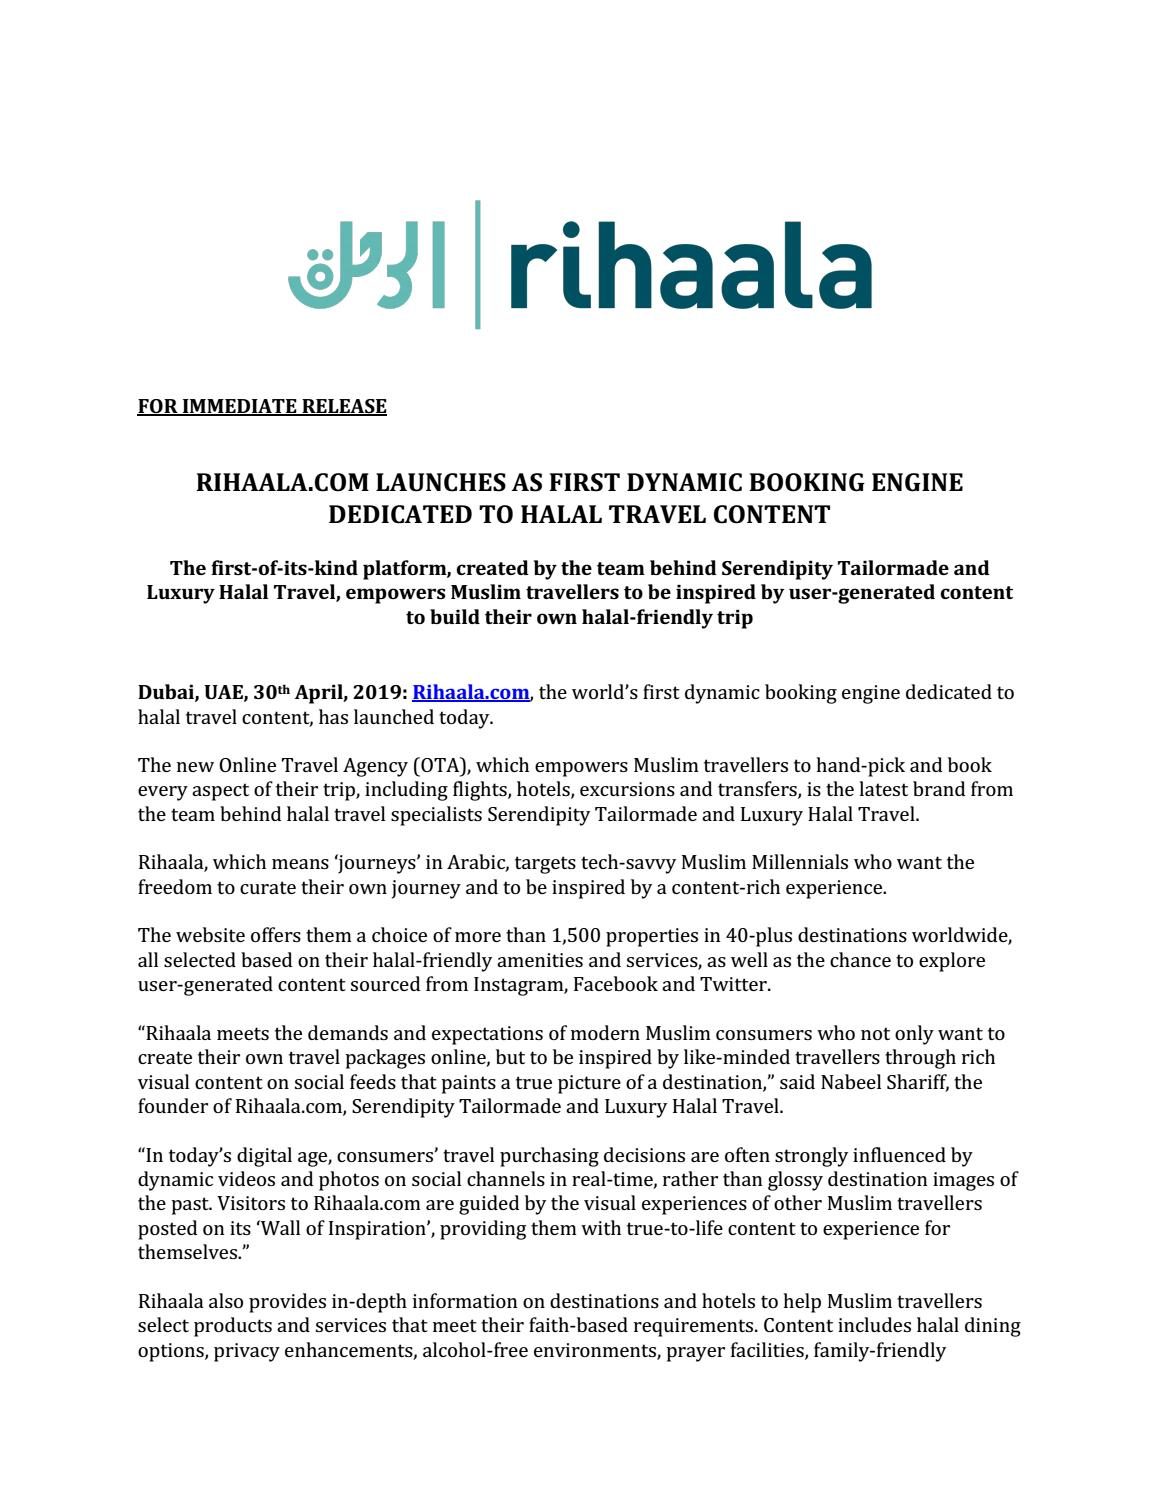 Rihaala Launches as First Halal Friendly Dynamic Booking